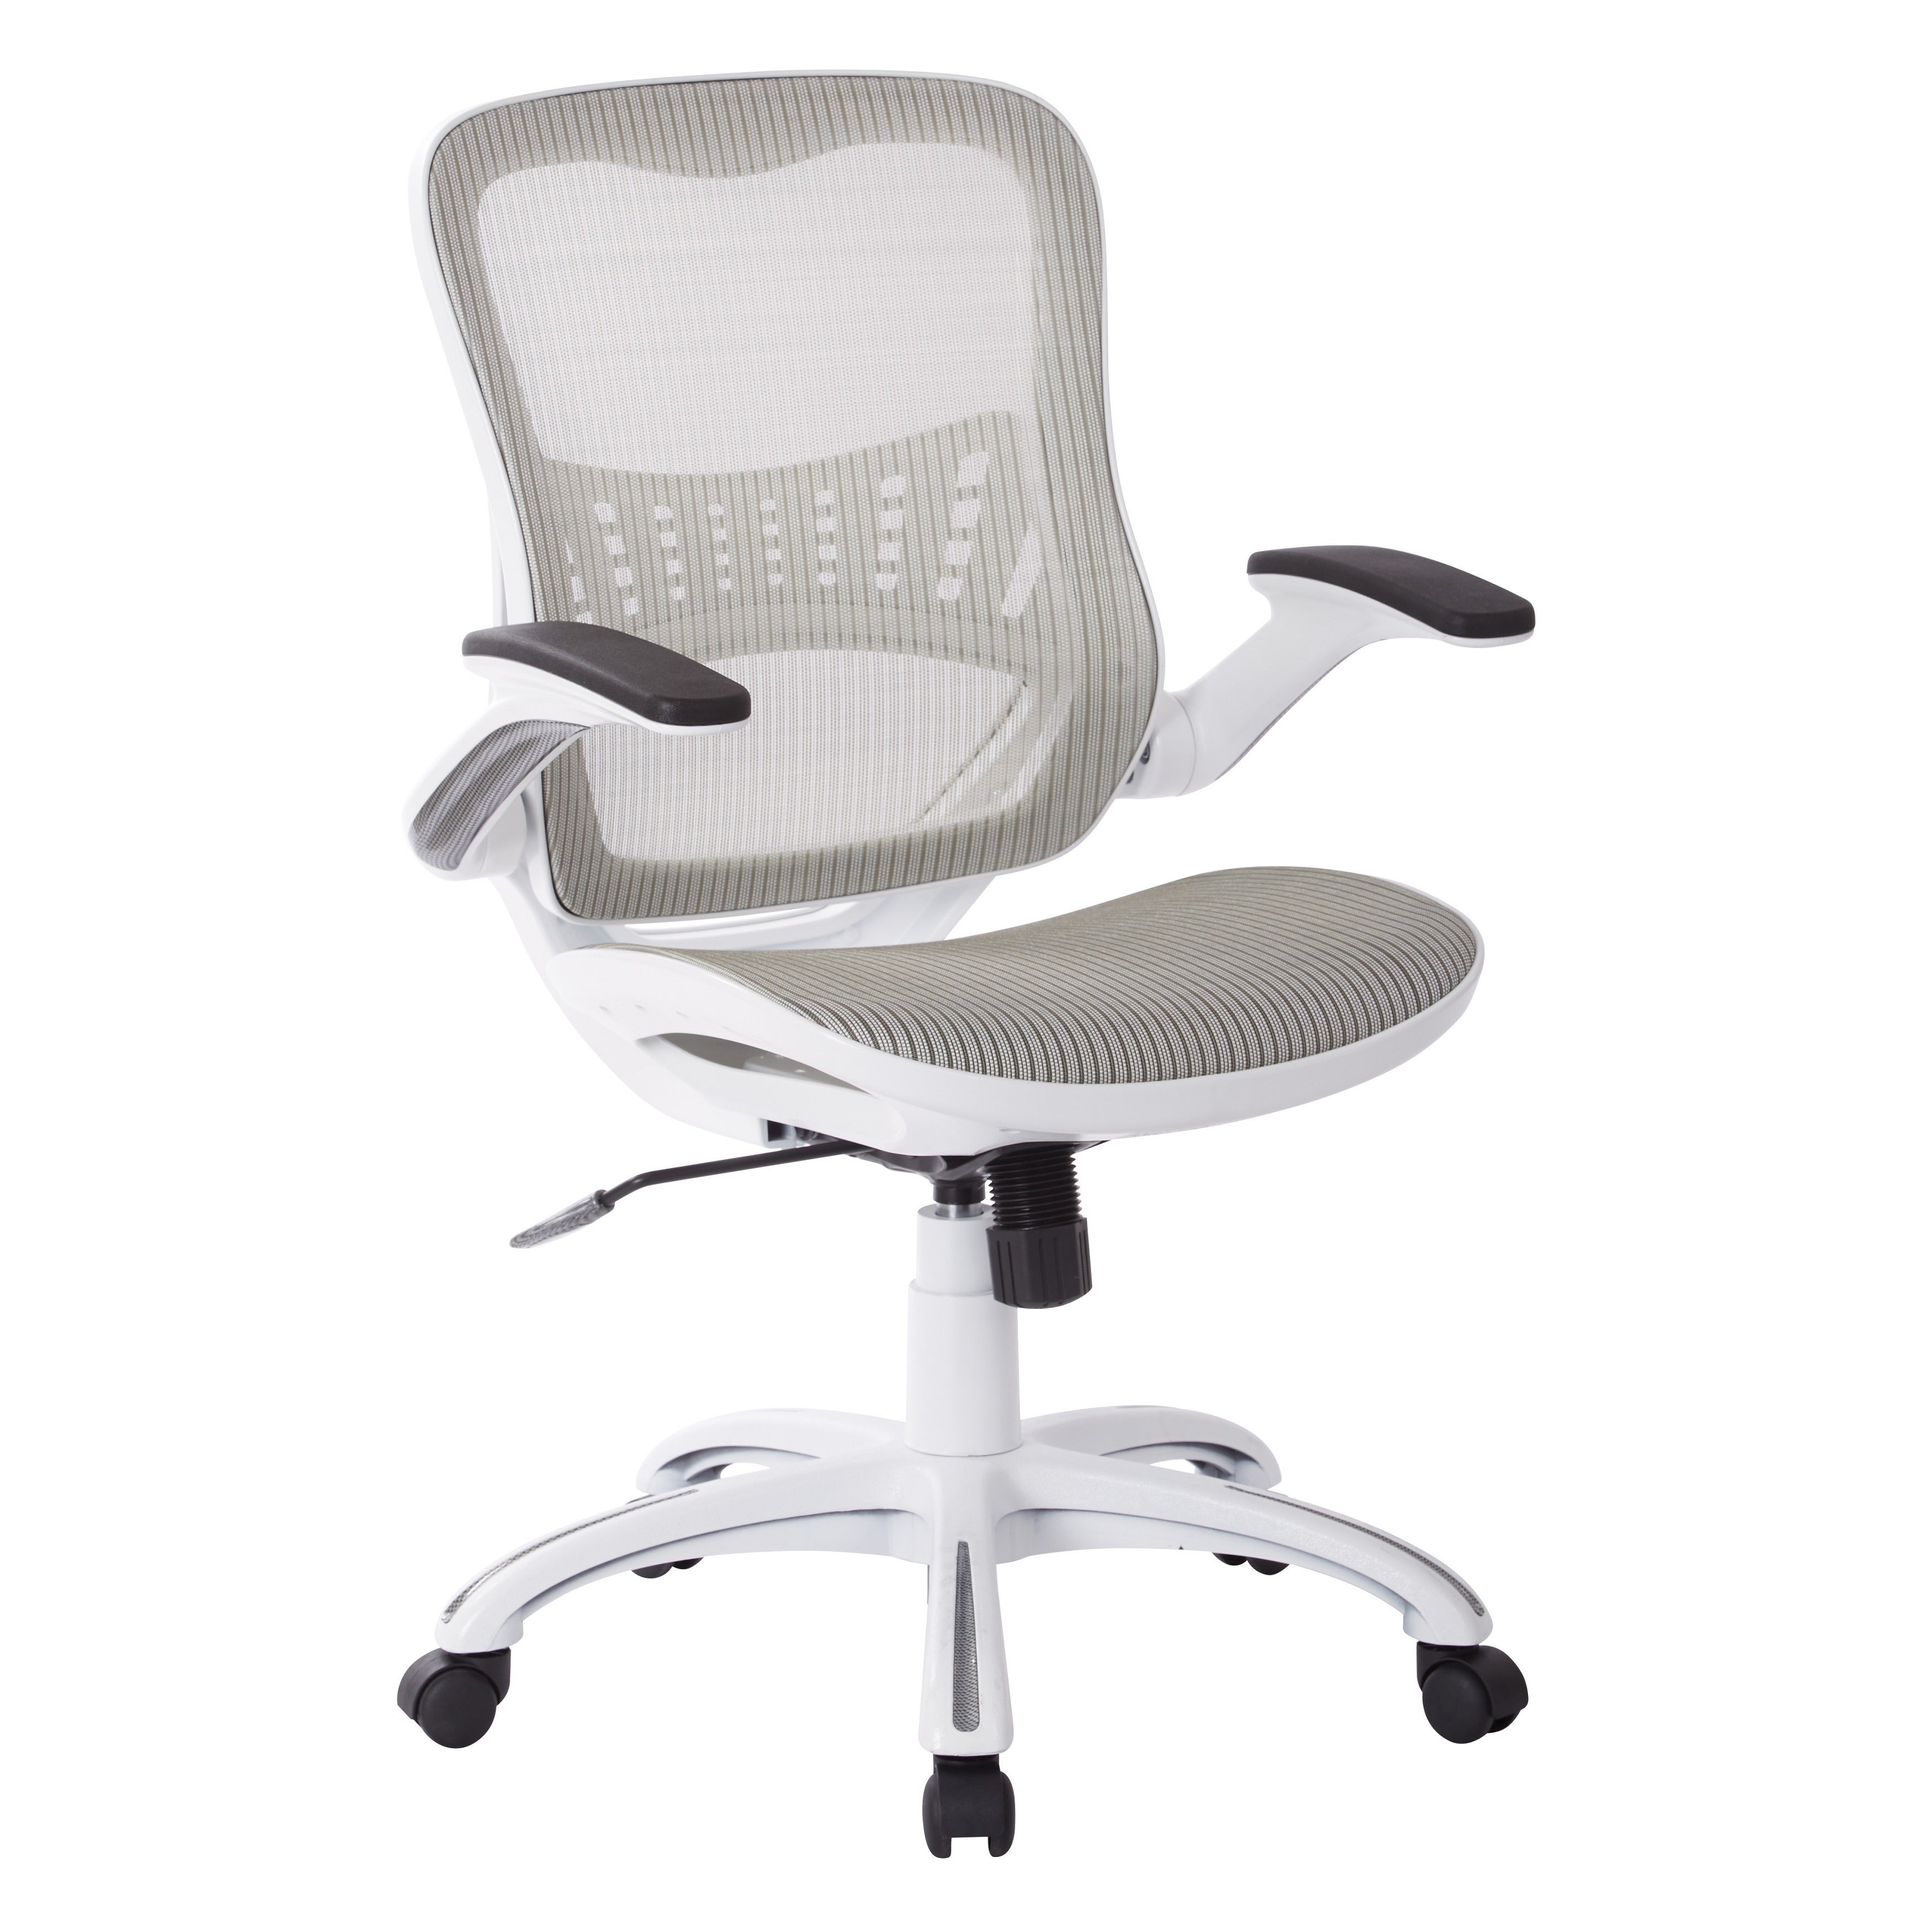 Office Conference Room Chairs Online At Our Best Home Furniture Deals